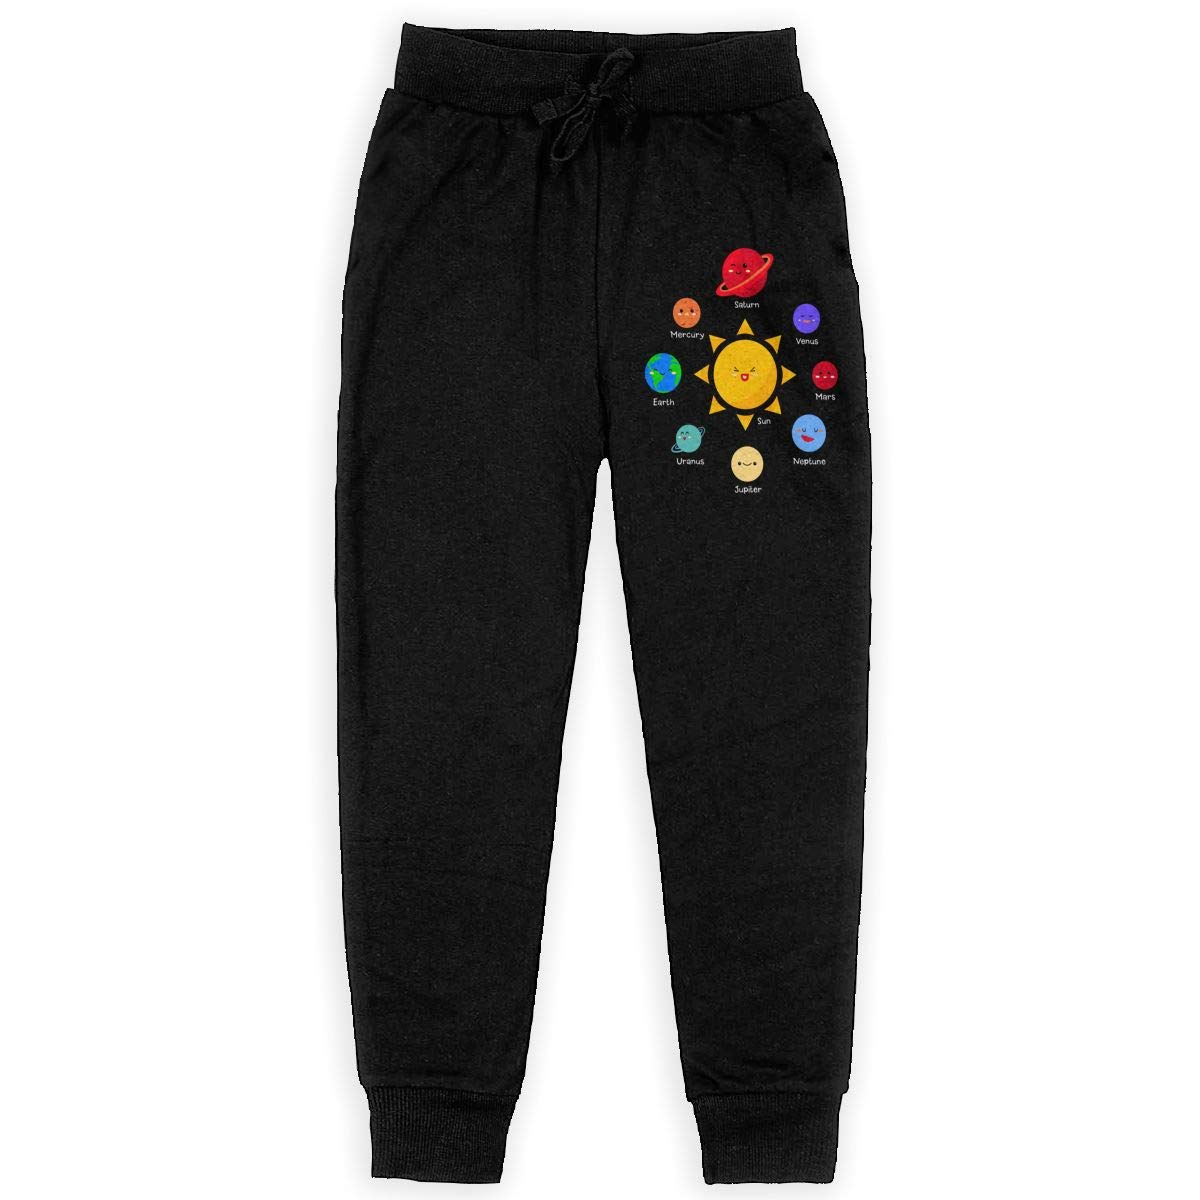 Youth Athletic Pants for Teen Boy WYZVK22 Solar System Drawing Soft//Cozy Sweatpants